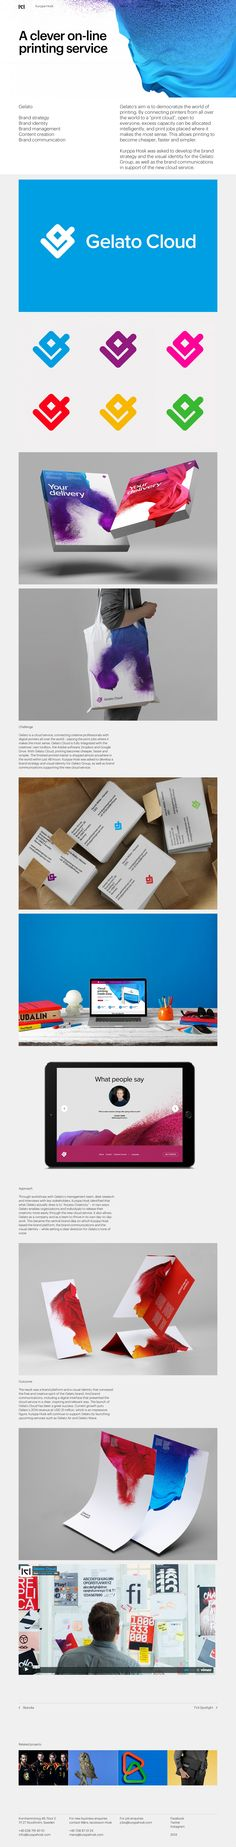 """Gelato's aim is to democratize the world of printing. By connecting printers from all over the world to a """"print cloud"""", excess capacity can be allocated intelligently, and print jobs placed where it makes the most sense. This allows printing to become cheaper, faster and simpler. Kurppa Hosk was asked to develop the brand strategy and the visual identity for the Gelato Group, as well as the brand communications. #Brandstrategy #Brandidentity #Brandmanagement #Contentcreation…"""